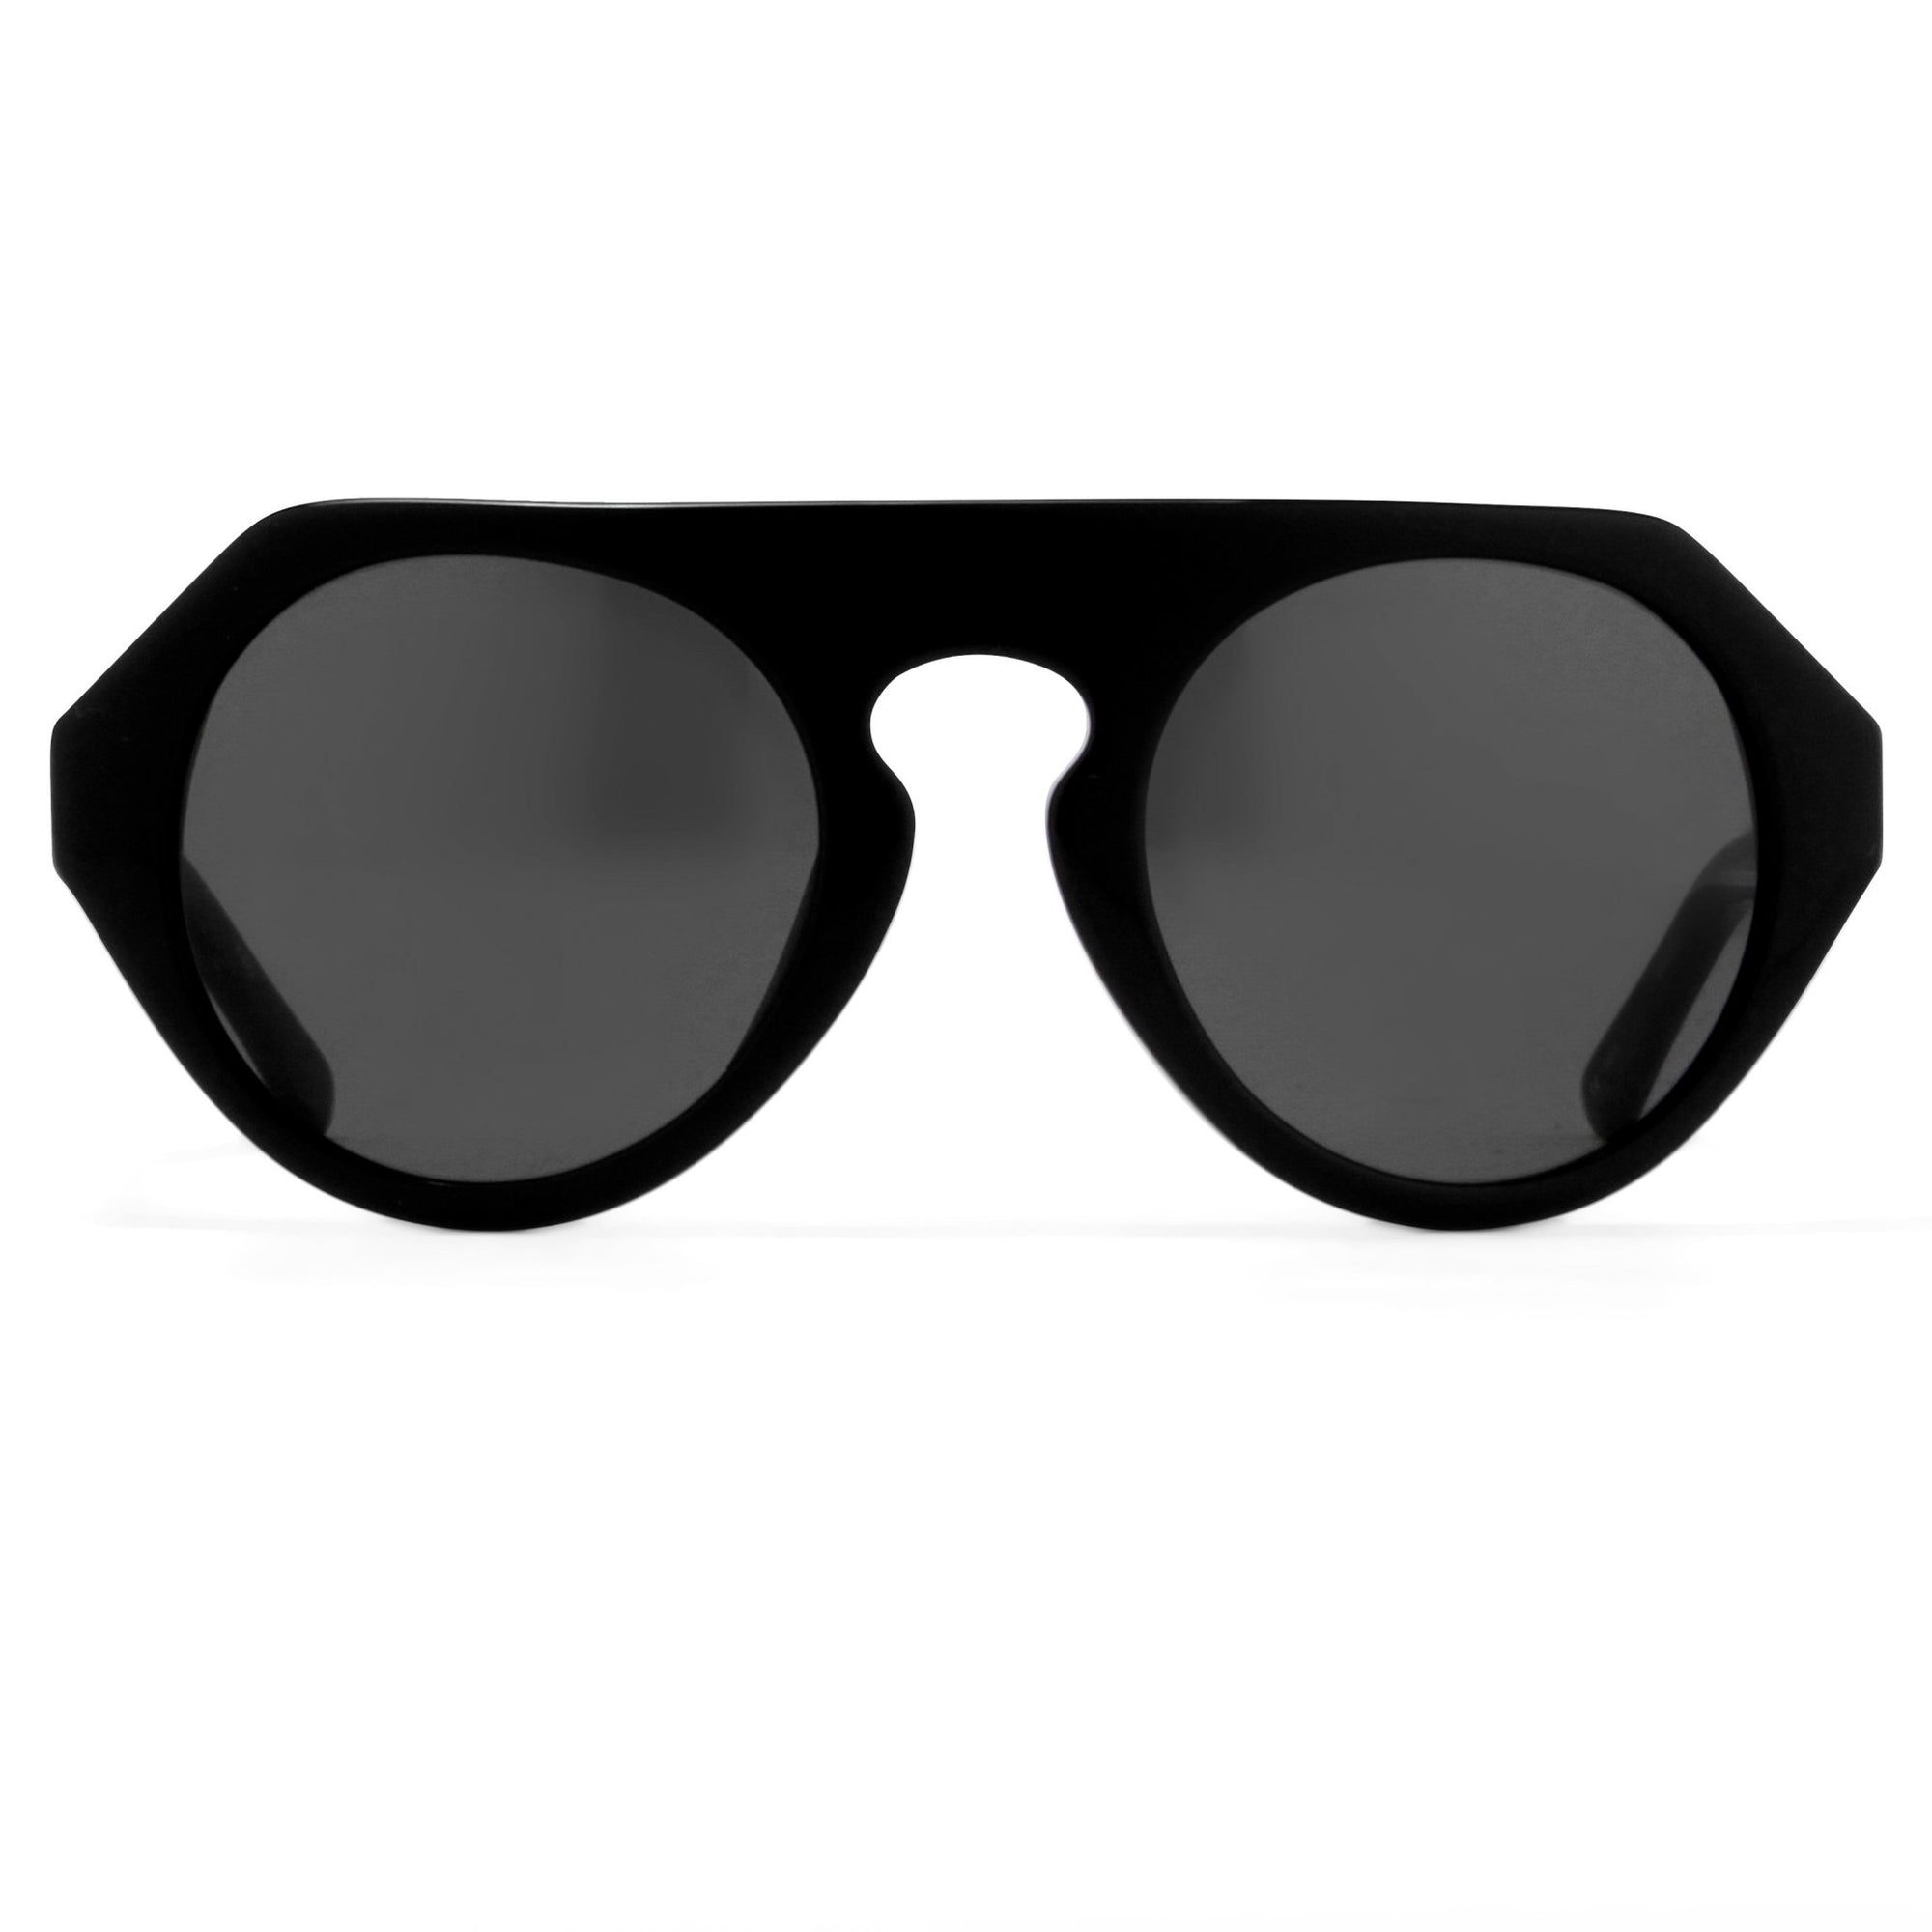 Prabal Gurung Sunglasses Women's Round Flat Top Black Acetate CAT3 Grey Lenses PG15C1SUN - Watches & Crystals